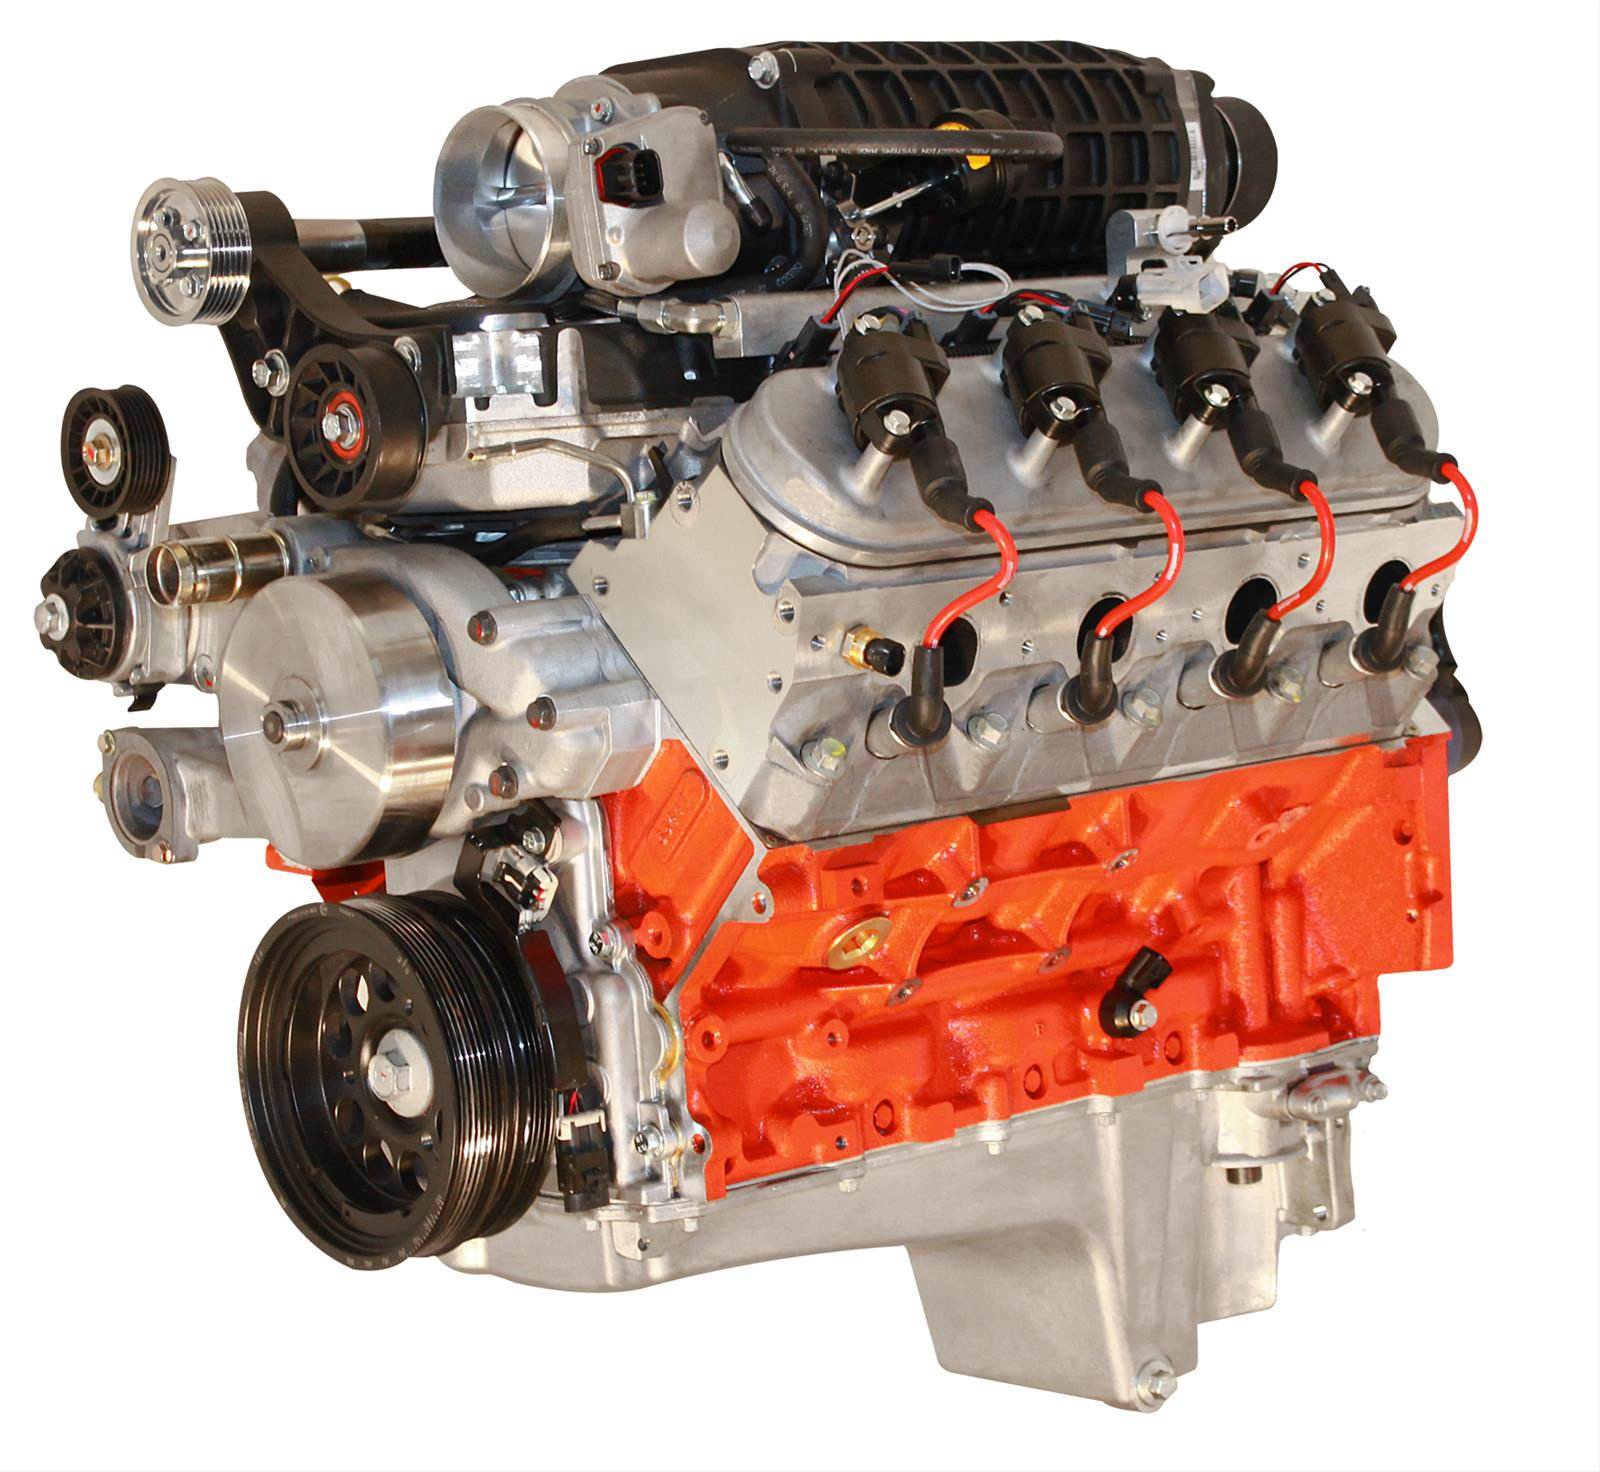 Blueprint engines pro series chevy ls 427 cid 750 hp blueprint engines pro series chevy ls 427 cid 750 hp supercharged fuel injected crate engines psls4272sct free shipping on orders over 99 at summit malvernweather Gallery